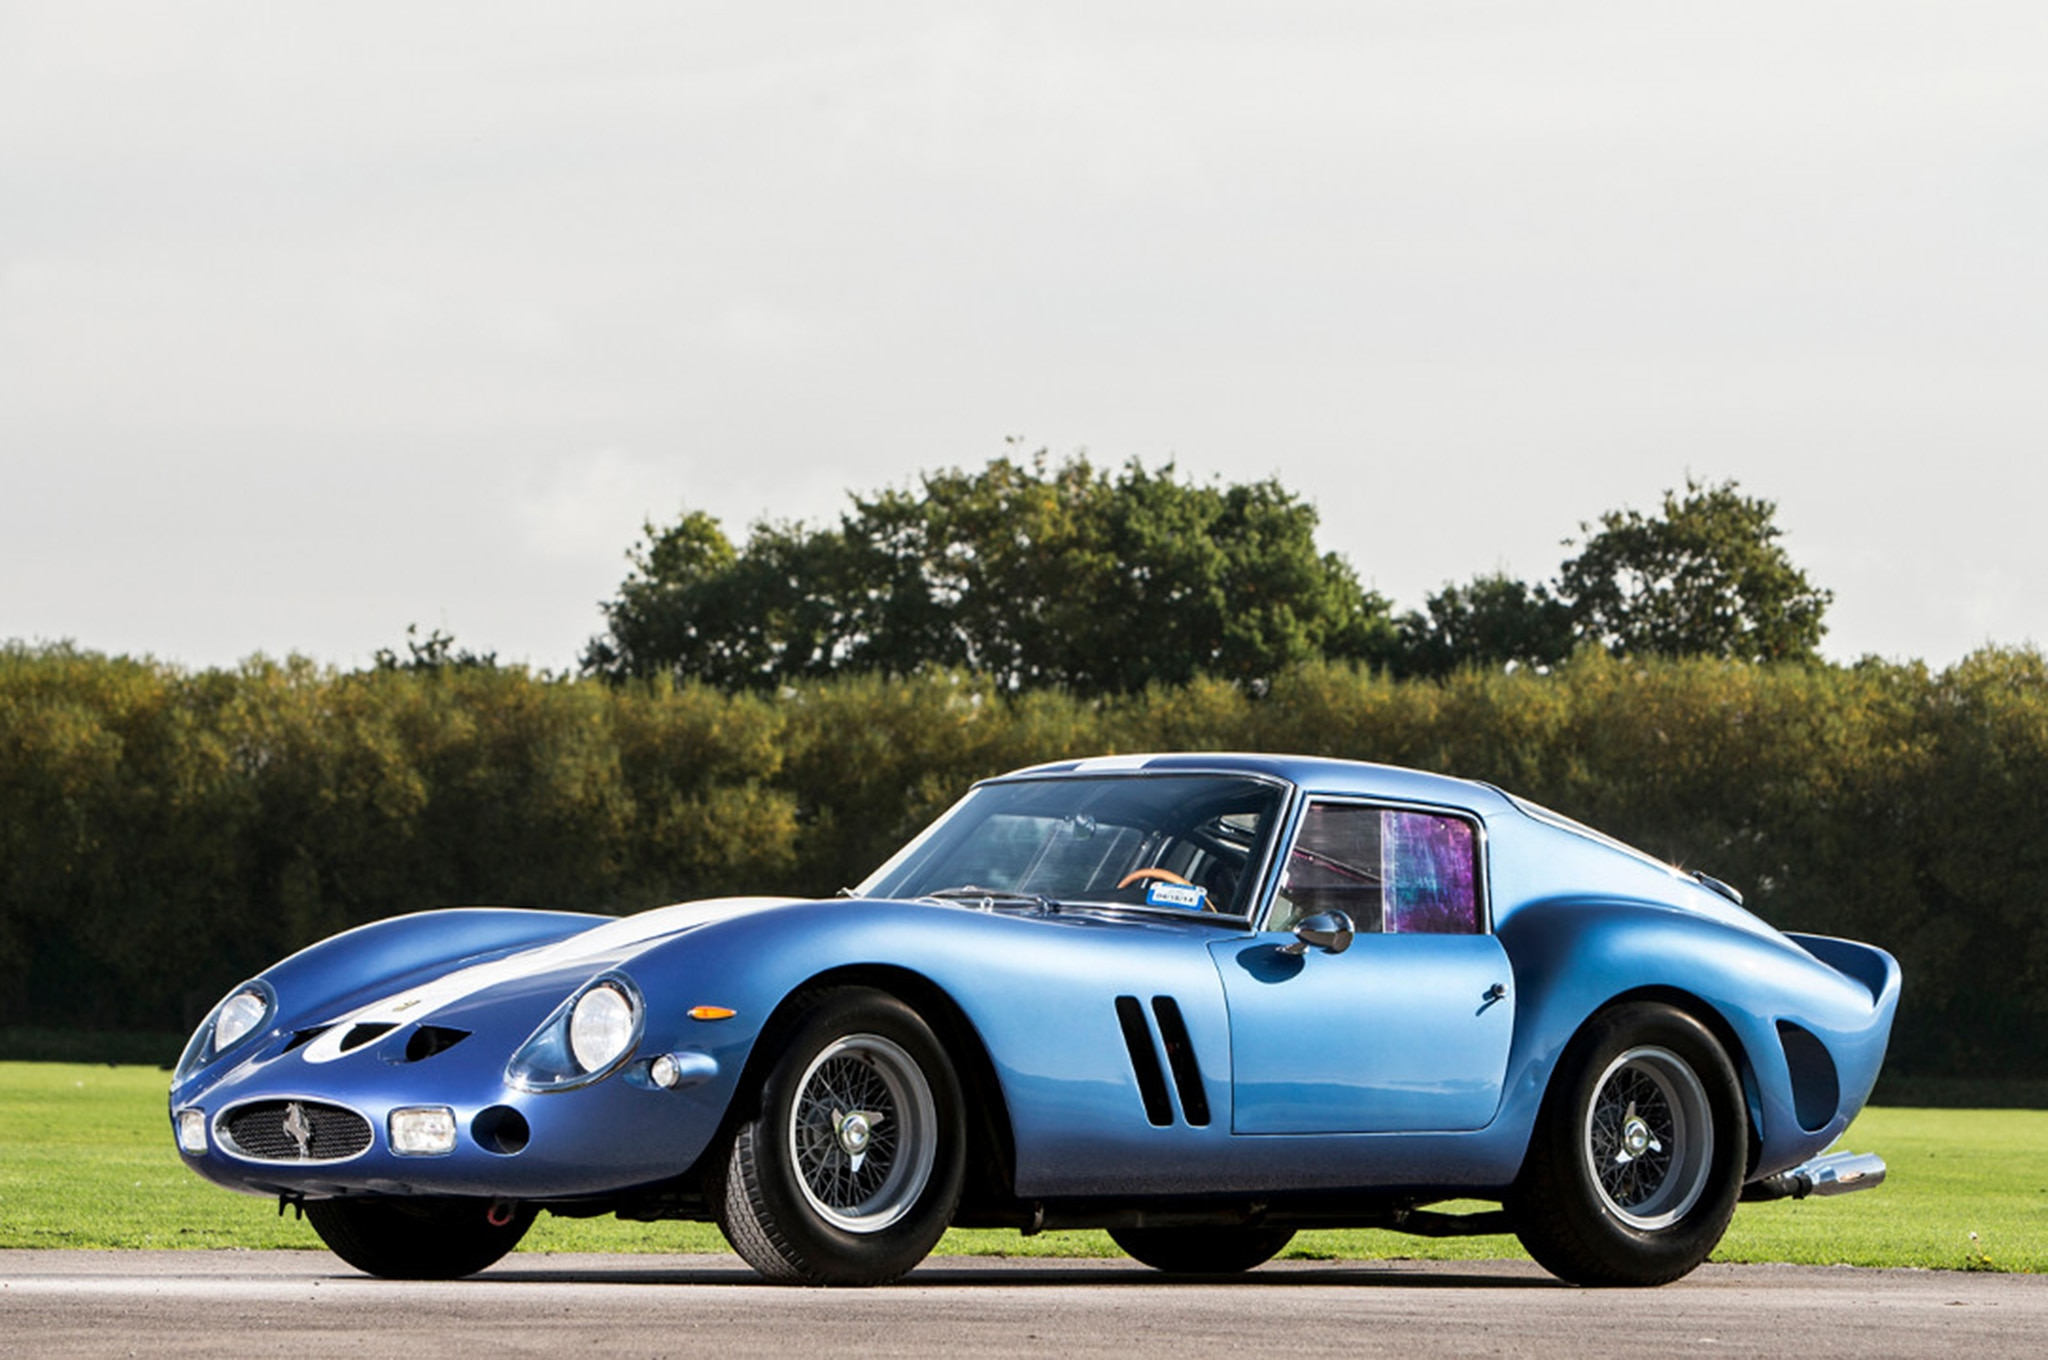 1962 ferrari 250 gto reportedly up for grabs for $56 million